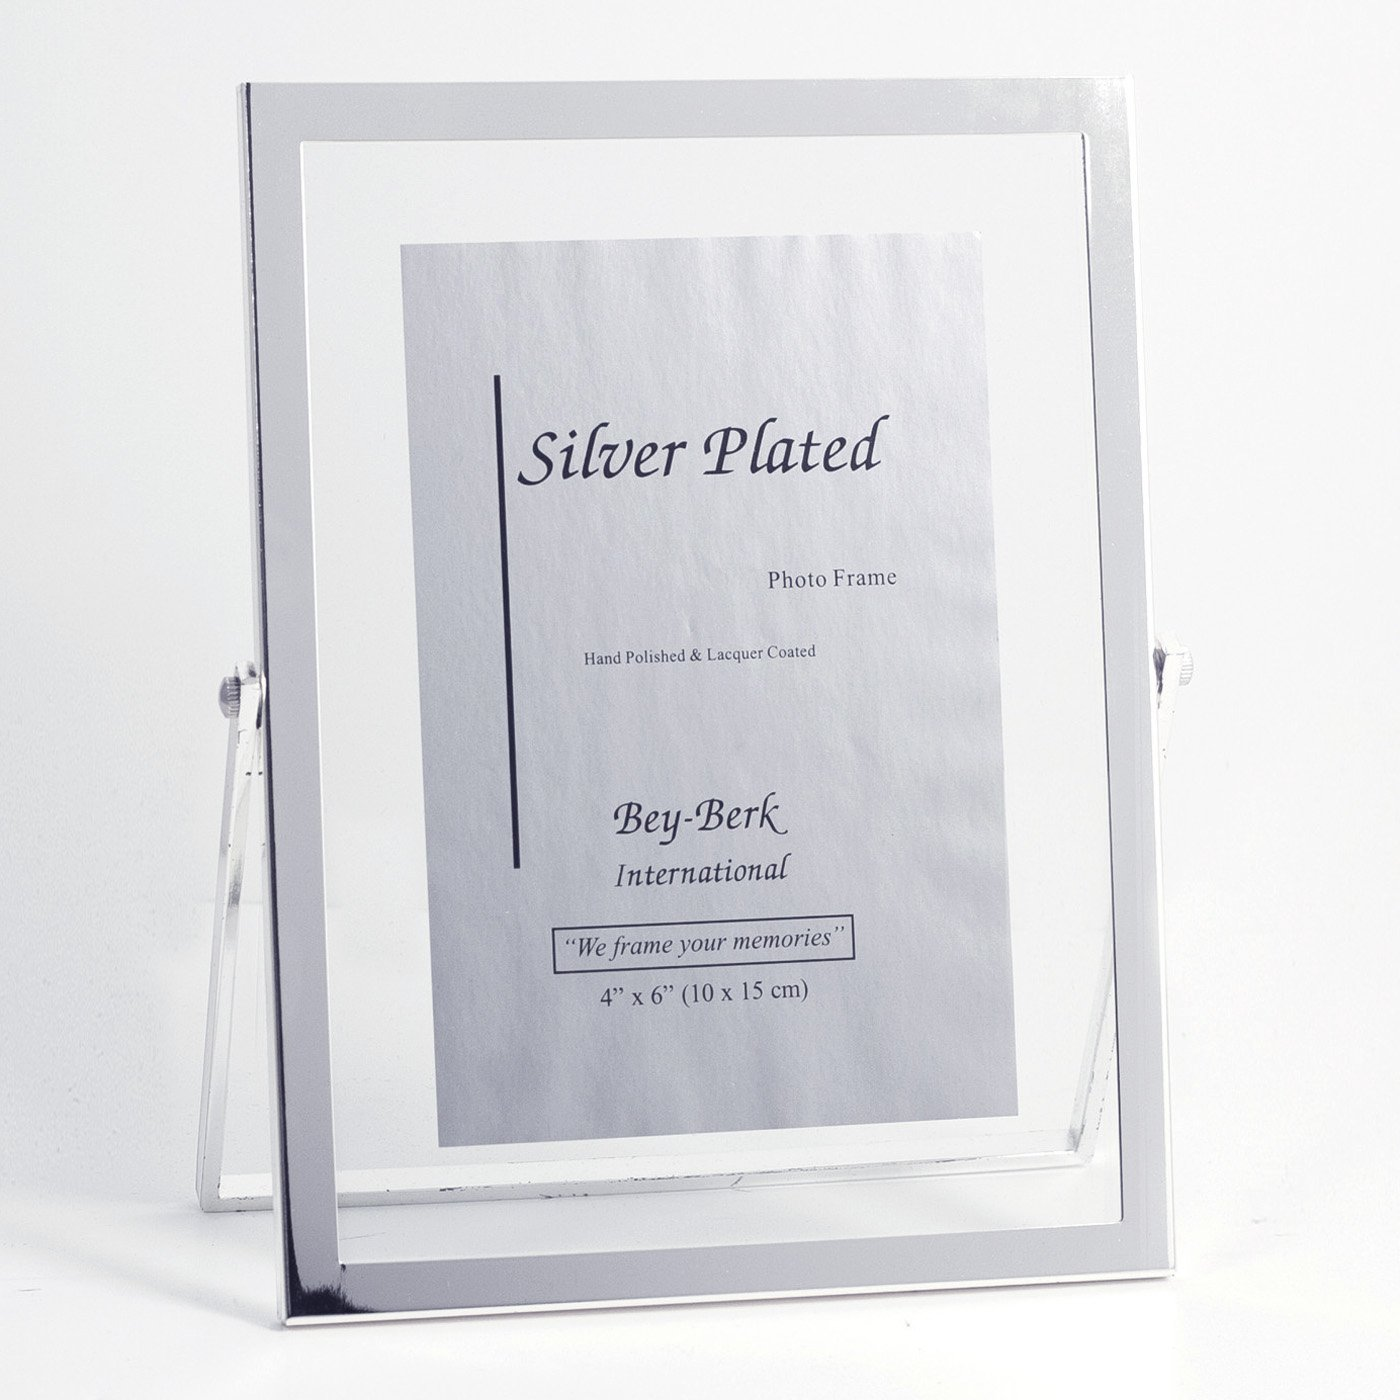 Bey-Berk Silver-Plated Floating 4 x 6 in. Photo Frame - Tarnish Proof